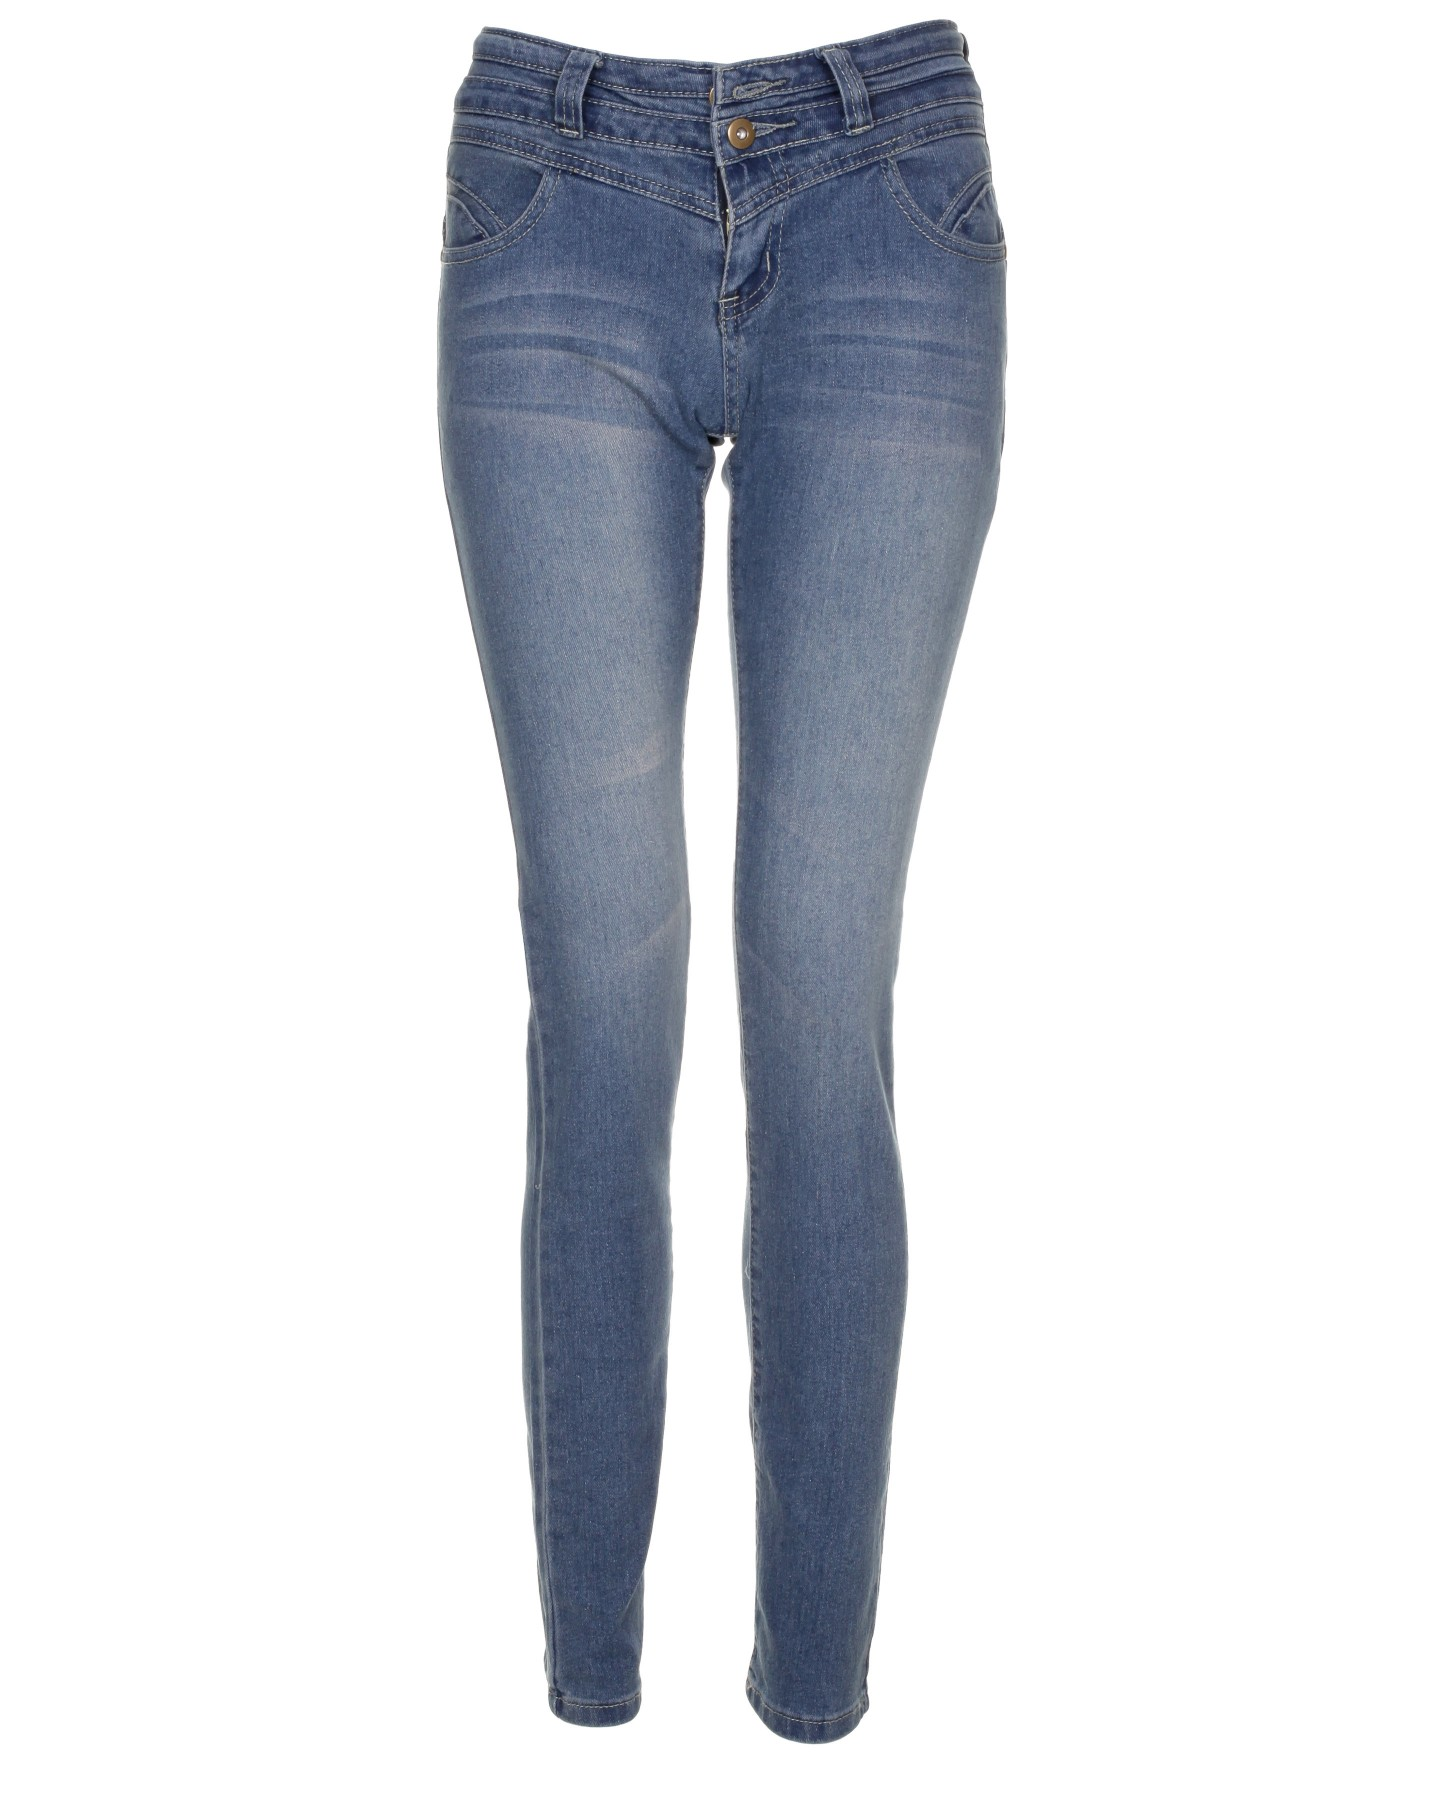 Blue-Inc-Womens-Vintage-High-Waist-Super-Skinny-Jeans-Midwash-New